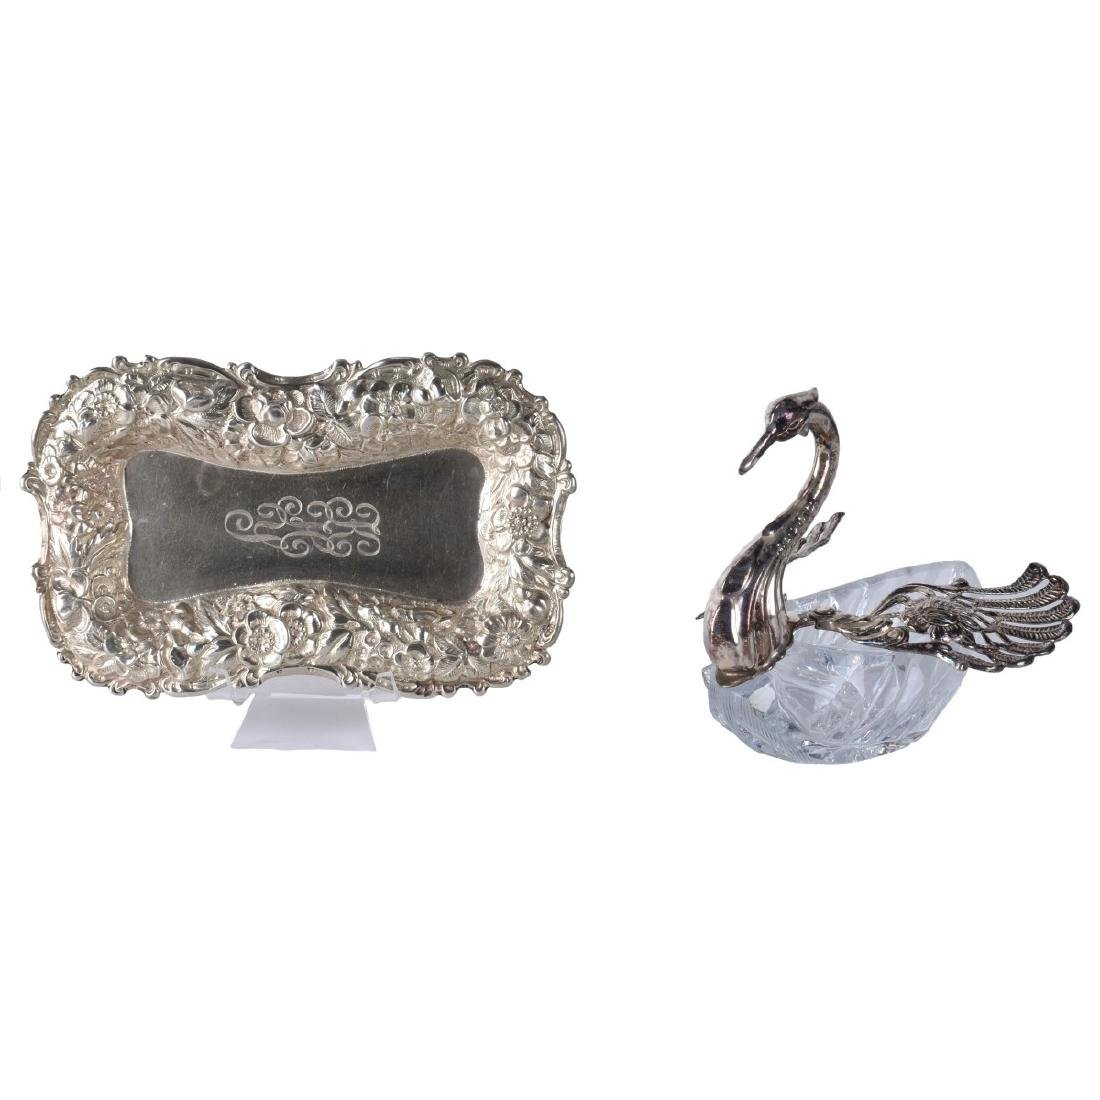 Two (2) Piece Lot: Sterling Silver Dish and Swan